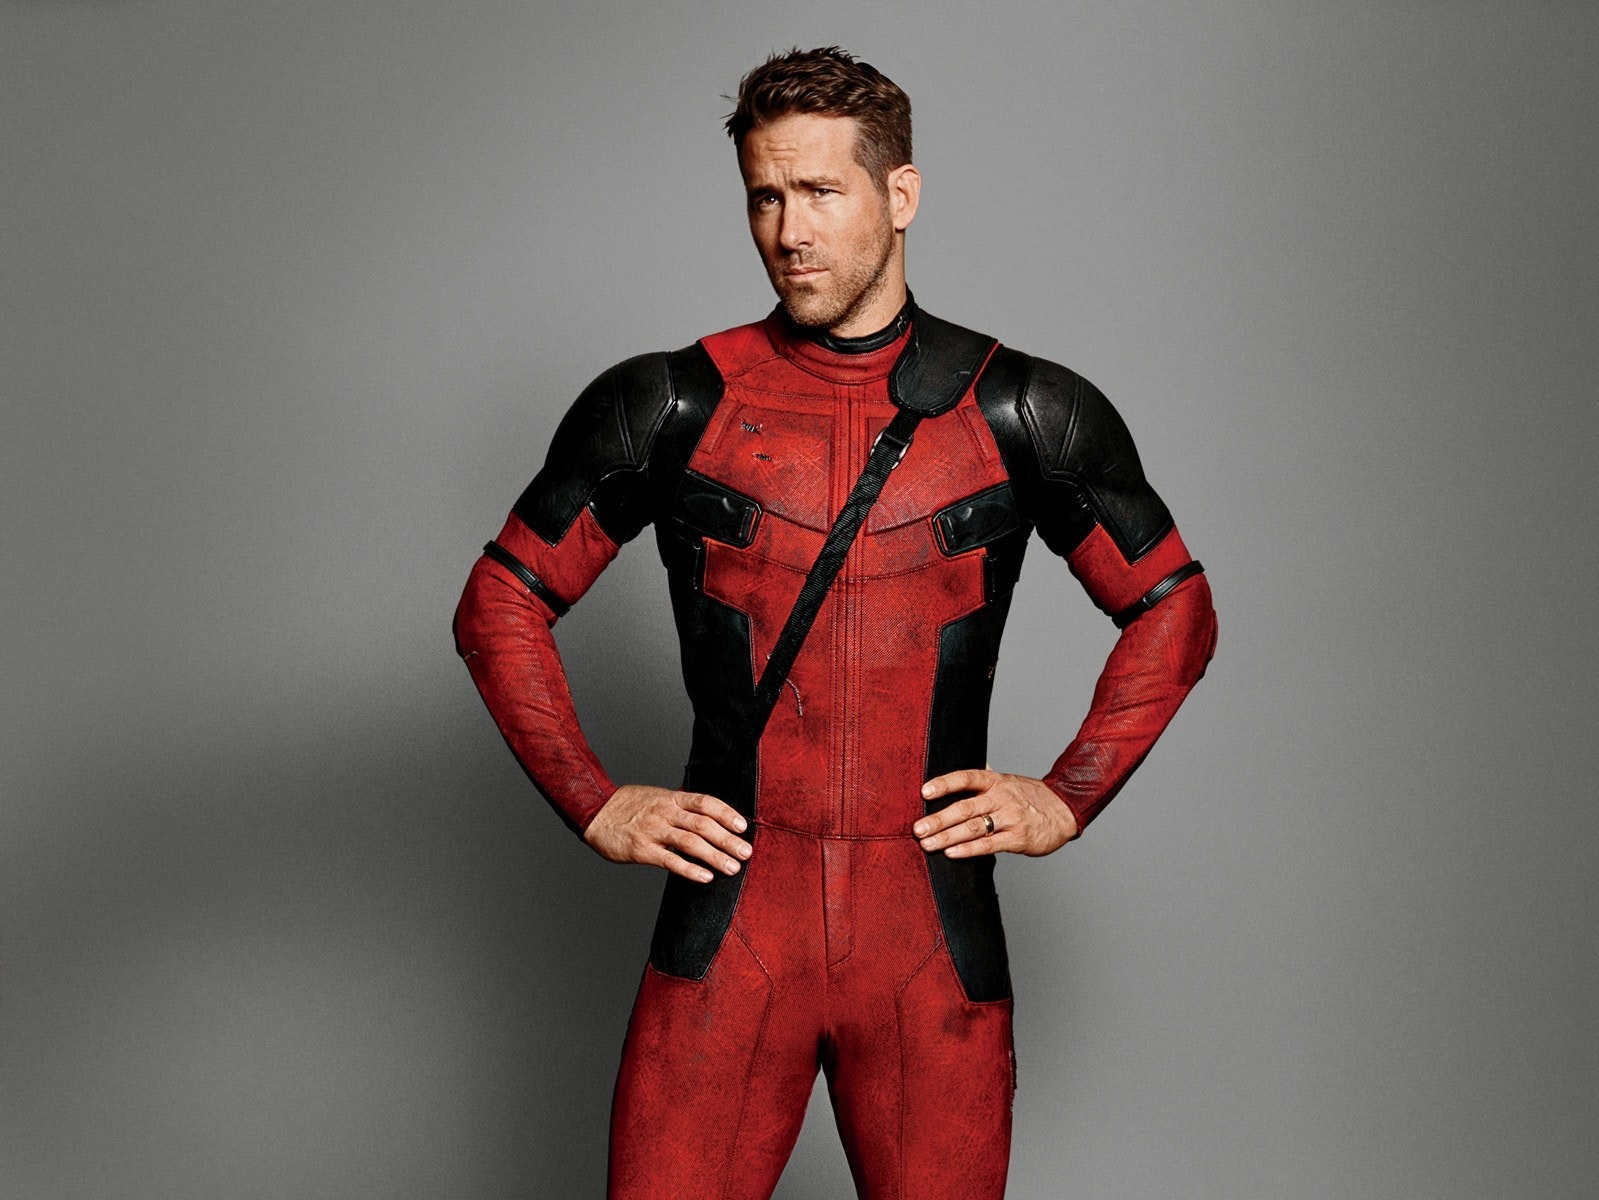 After the Golden Globes, 'Deadpool' Will Be the Superhero Movie to Beat